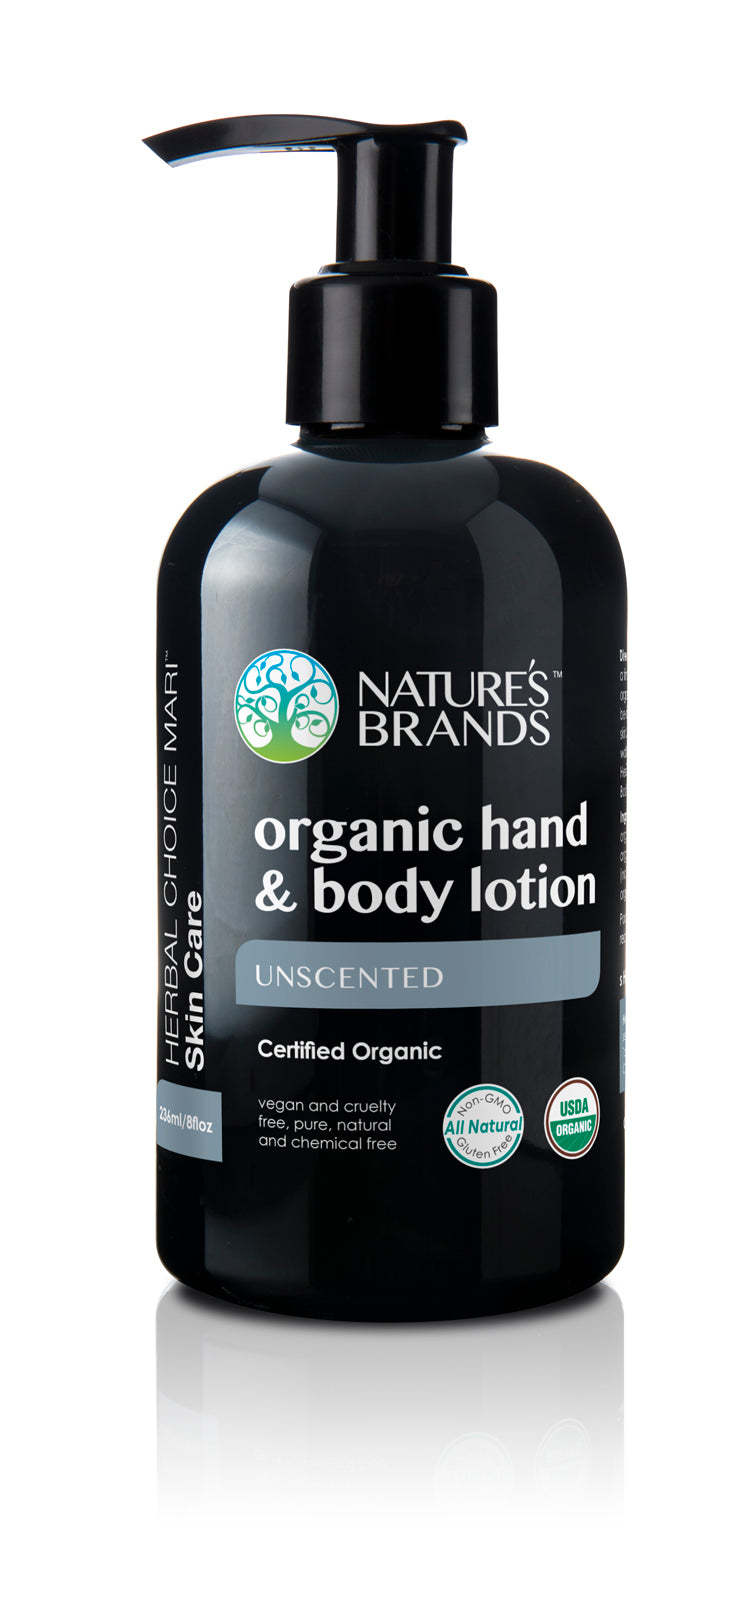 Herbal Choice Mari Organic Hand & Body Lotion, Unscented - Herbal Choice Mari Organic Hand & Body Lotion, Unscented - Herbal Choice Mari Organic Hand & Body Lotion, Unscented